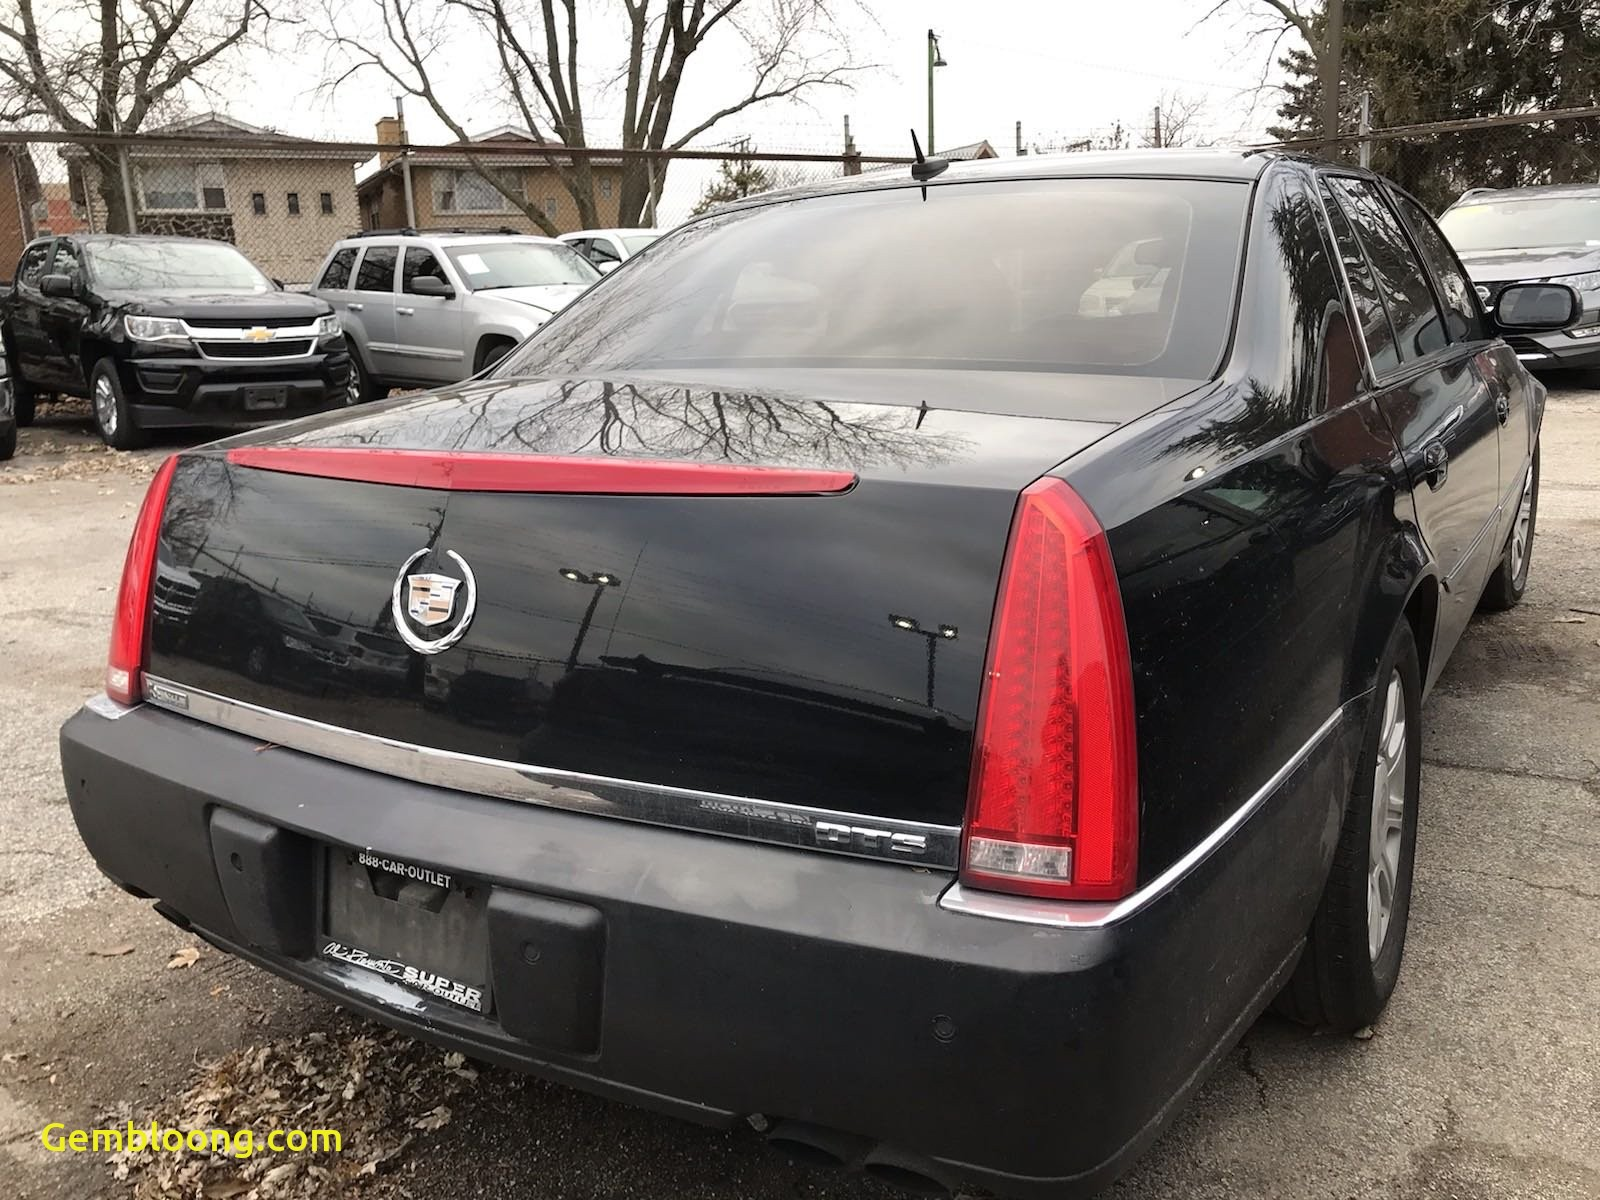 5 000 Cars for Sale Near Me Beautiful Used Vehicles Between $1 001 and $10 000 for Sale In Chicago